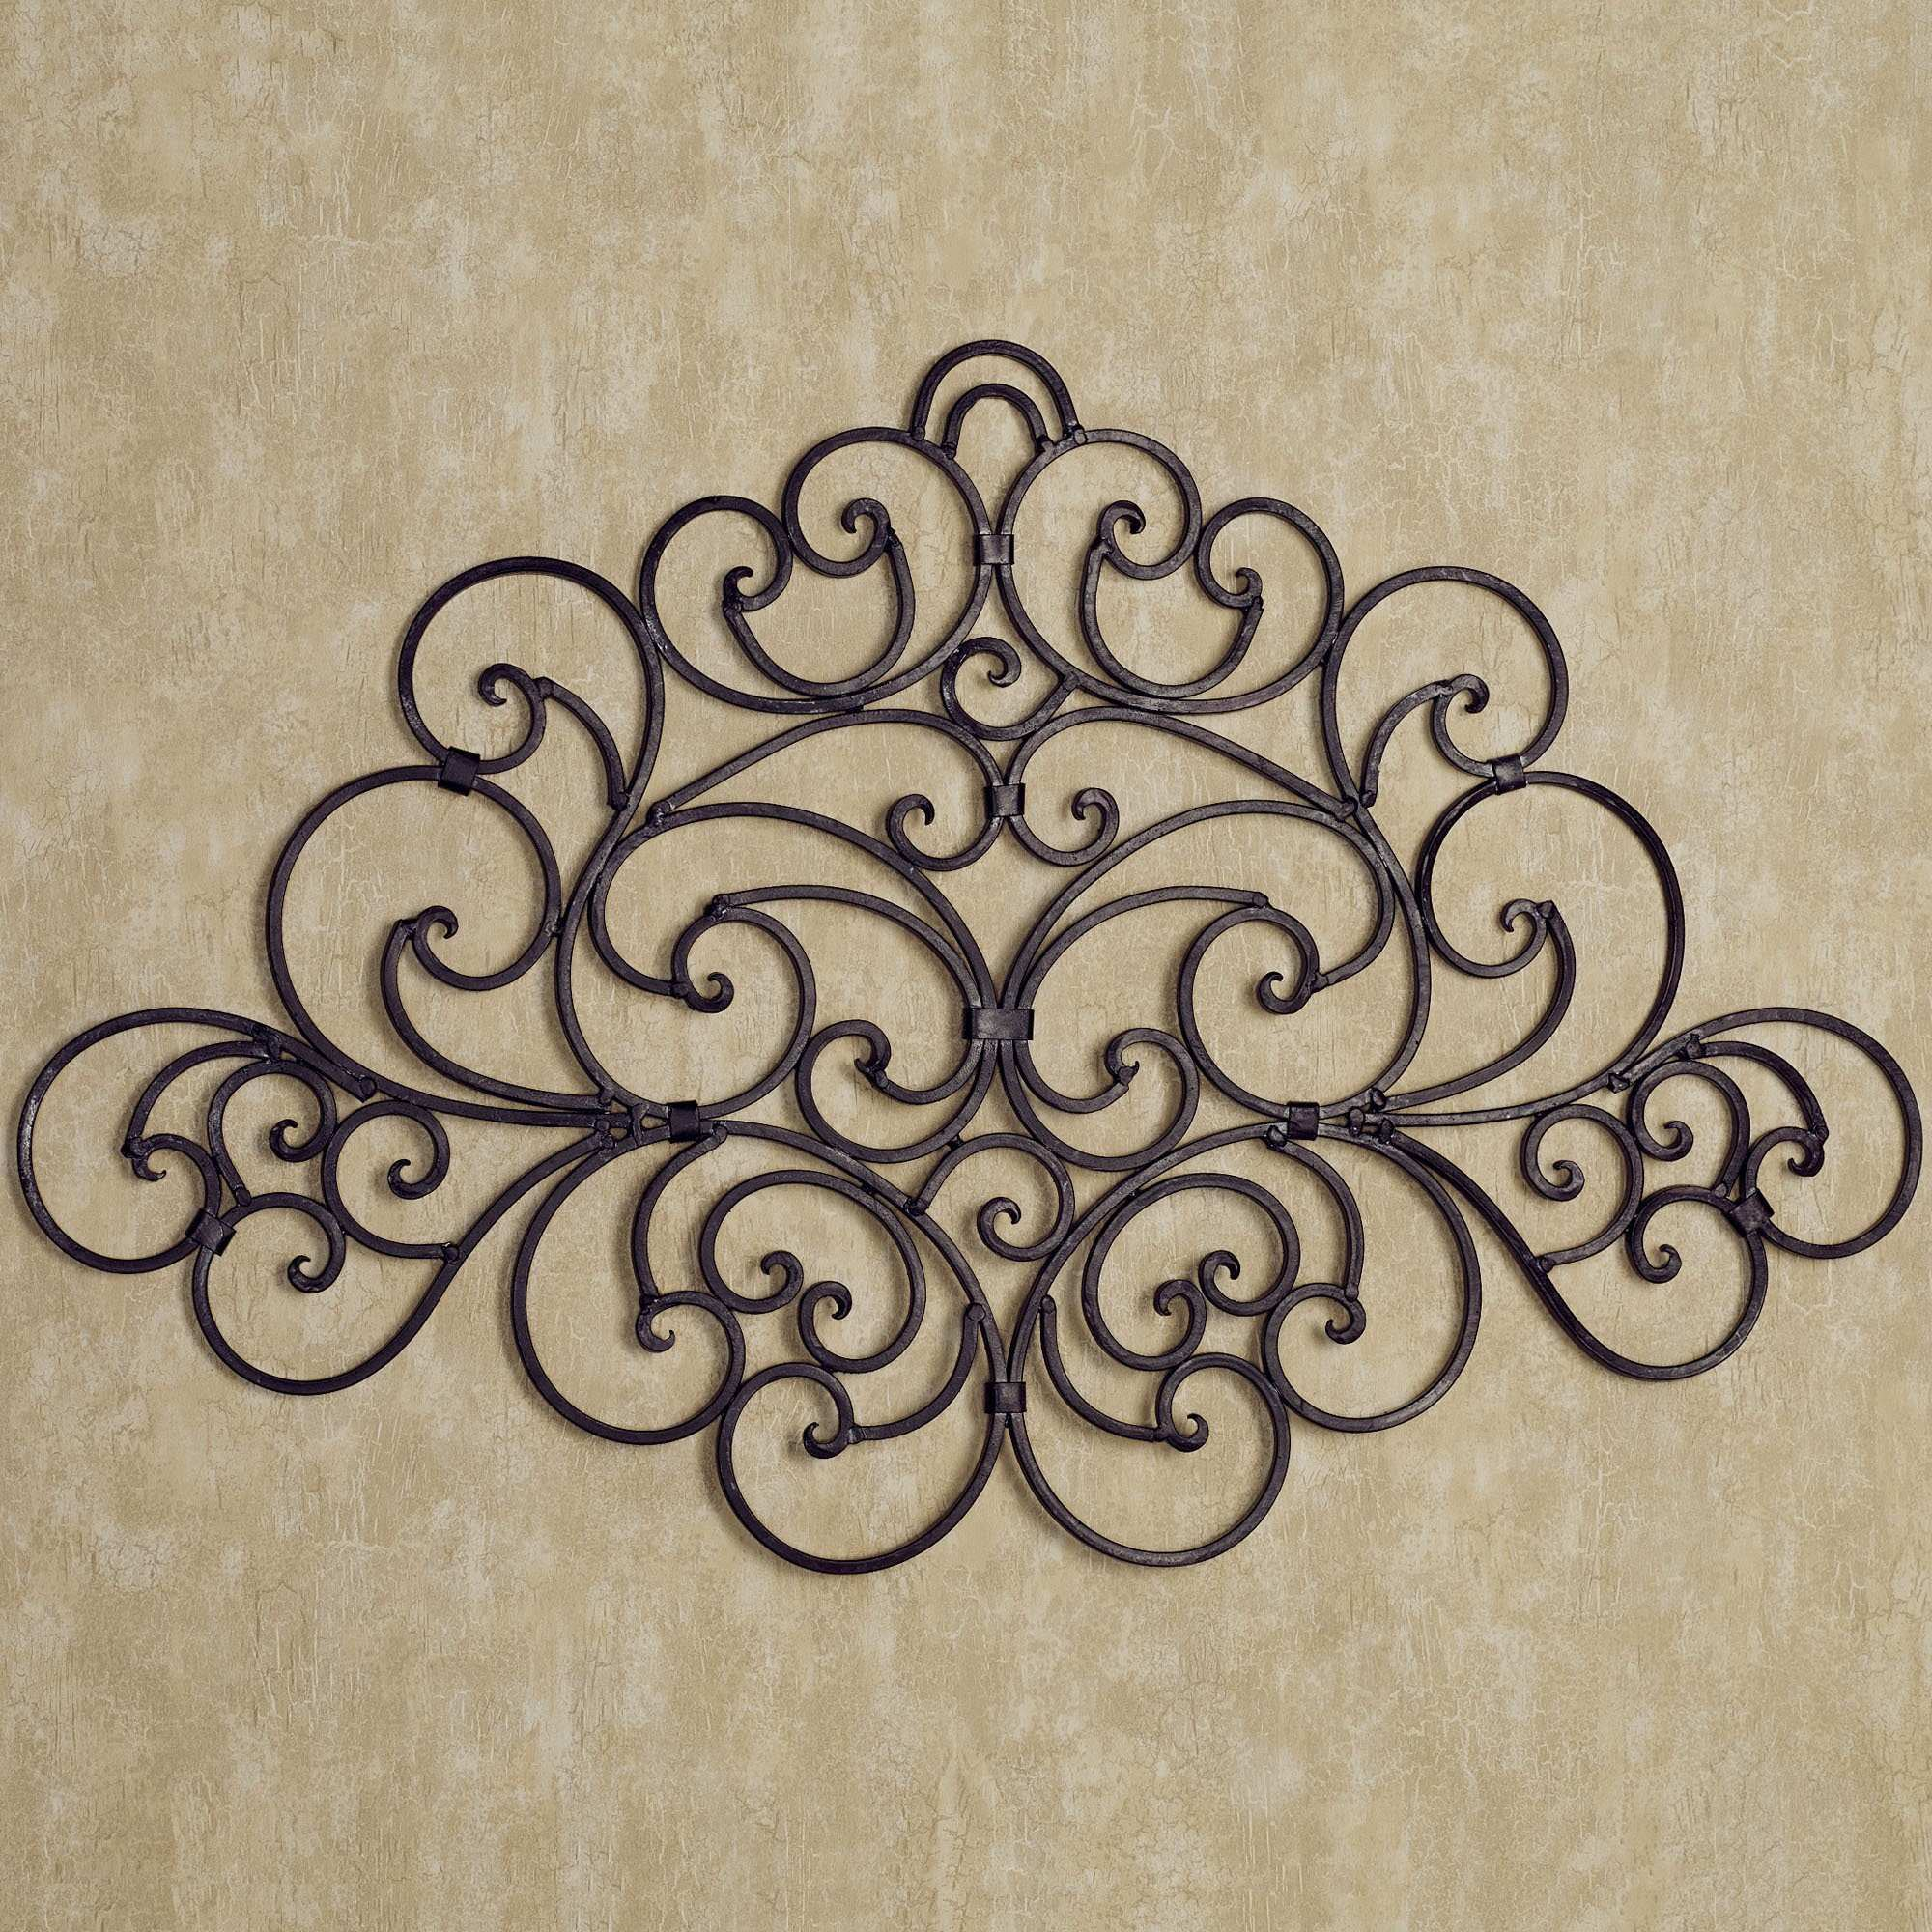 Wrought Iron Scroll Wall Decor Awesome Best 25 Wrought Iron Wall